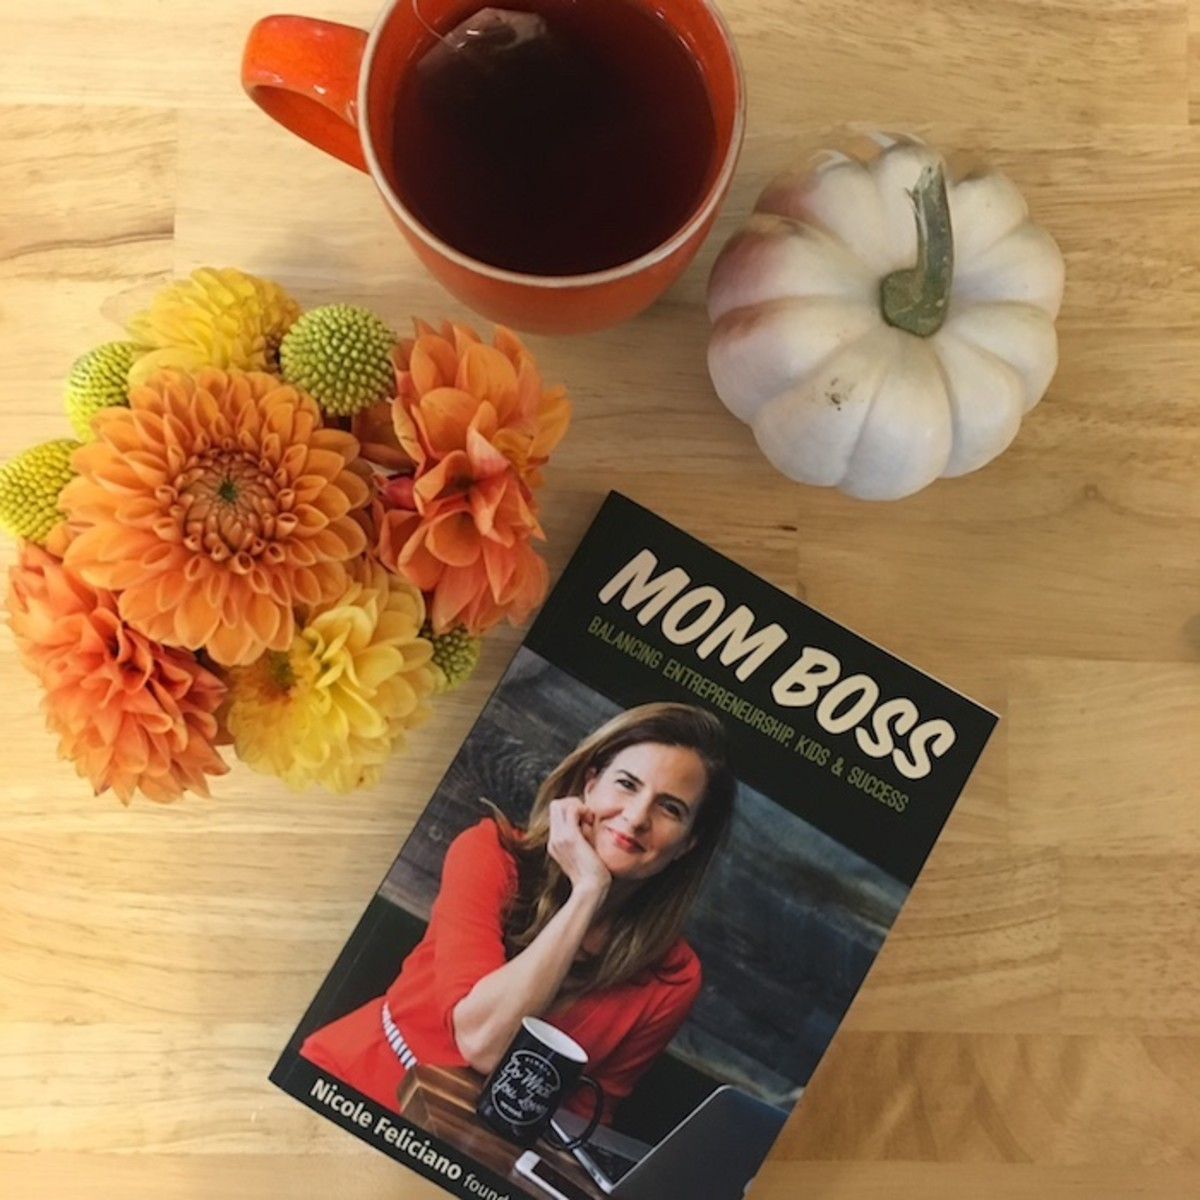 mom boss book nicole feliciano